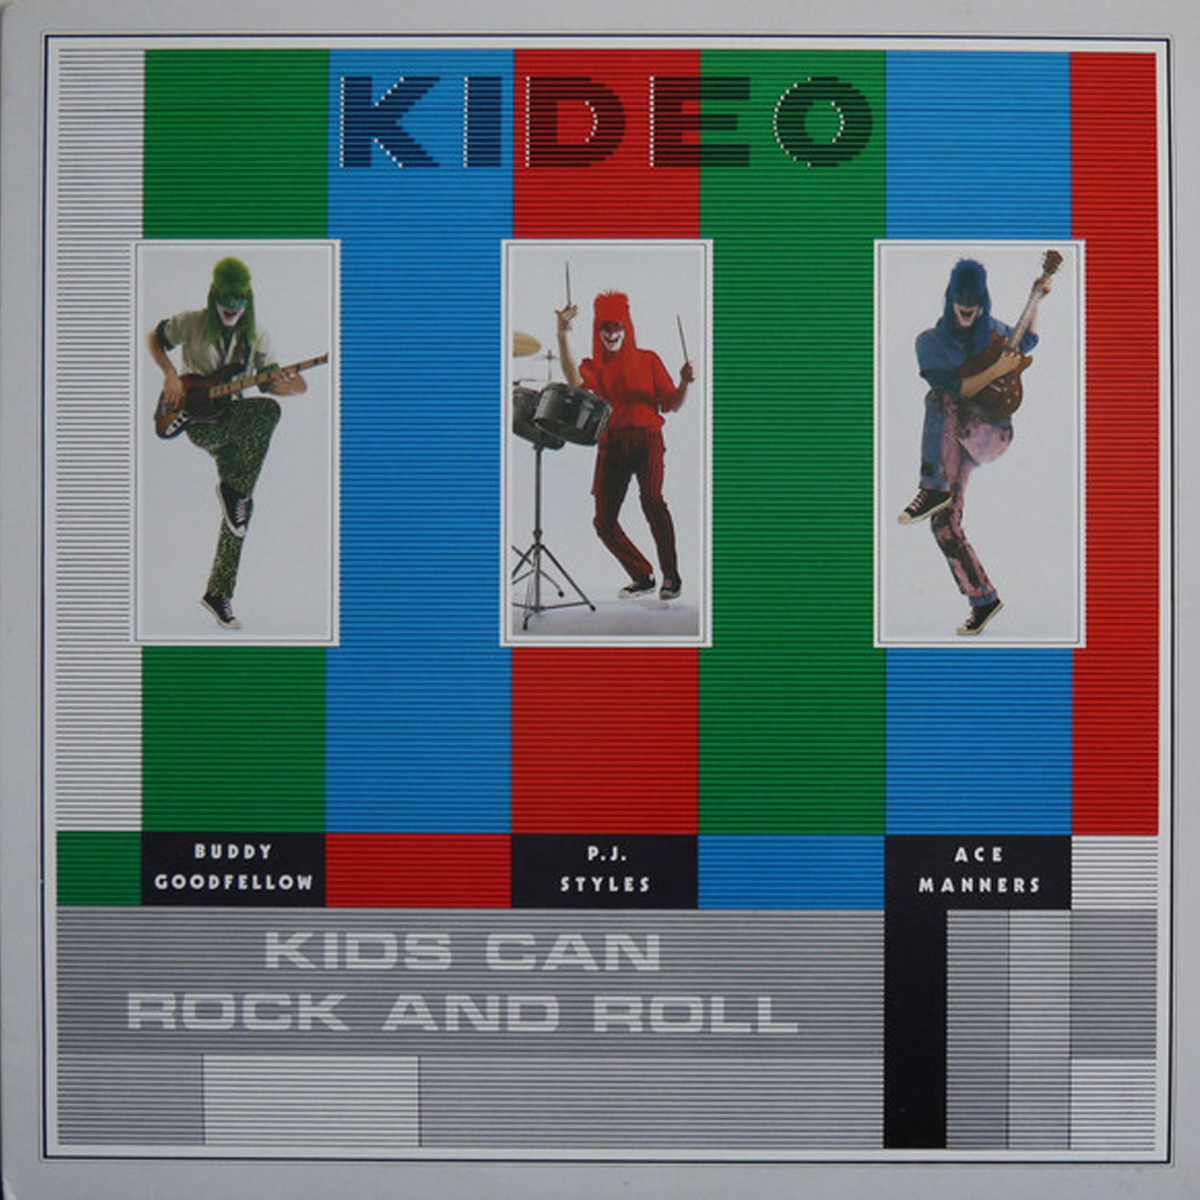 Kids Can Rock and Roll was released in 1986 and still holds up.